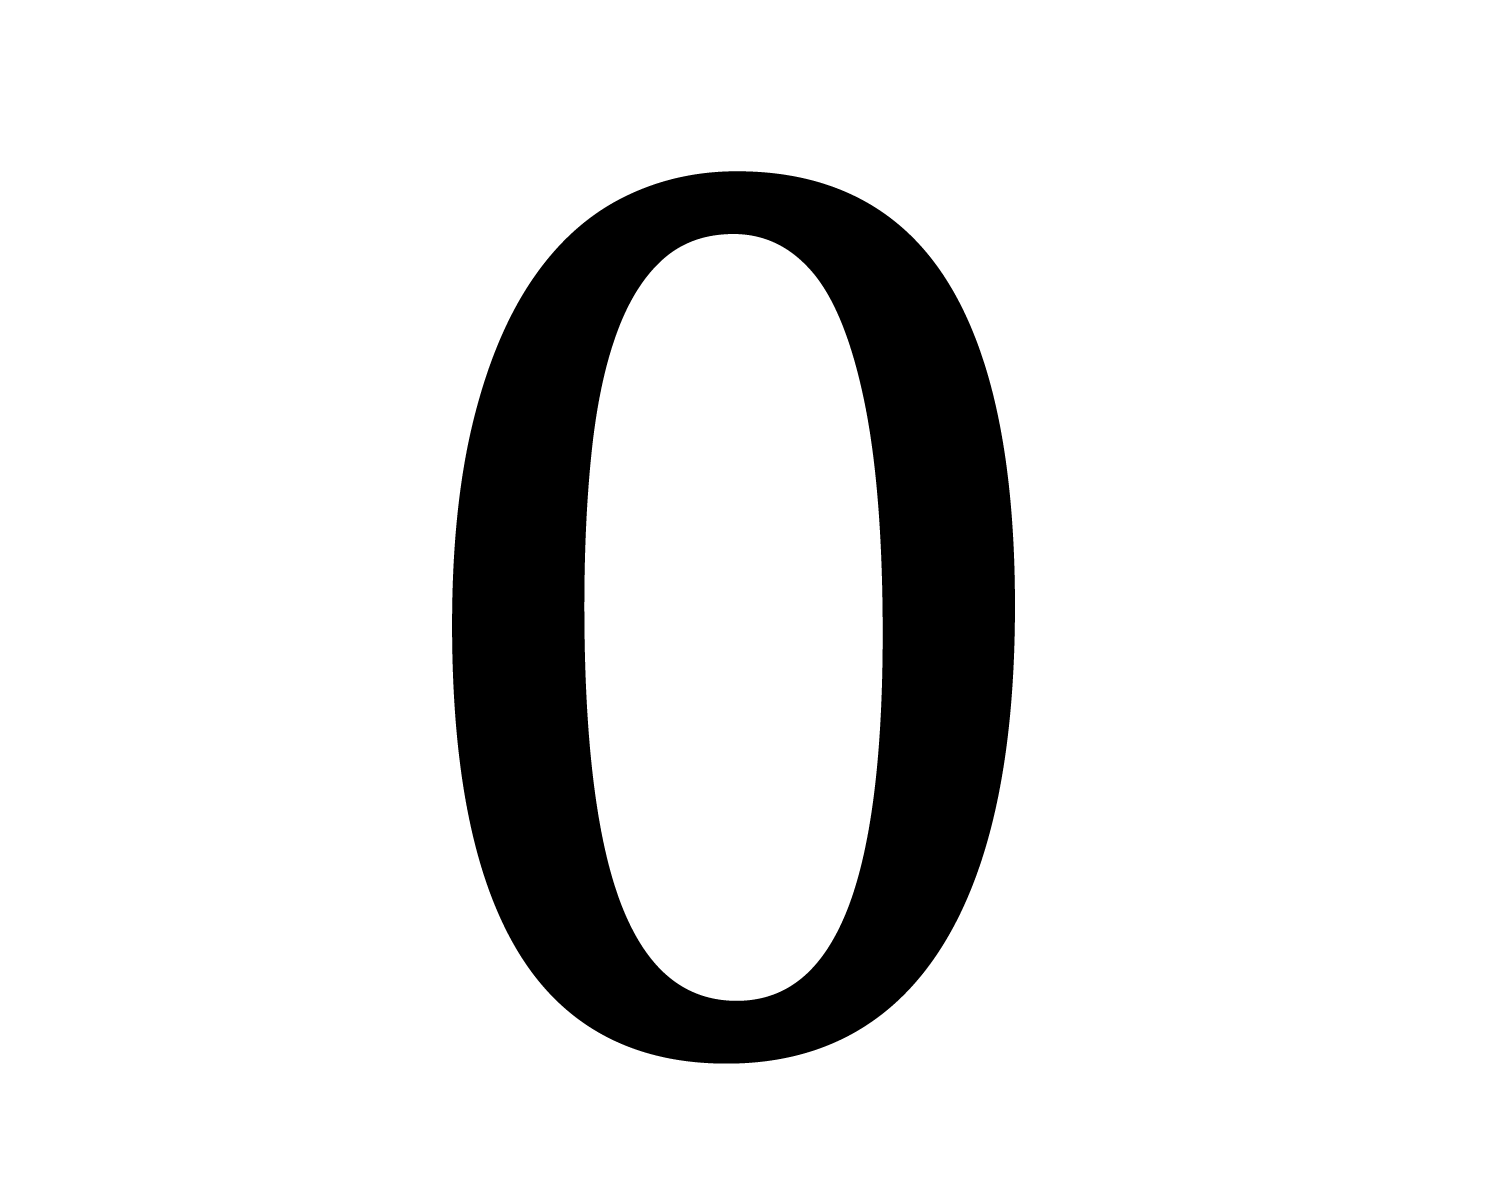 Download and use 0 Transparent PNG Image